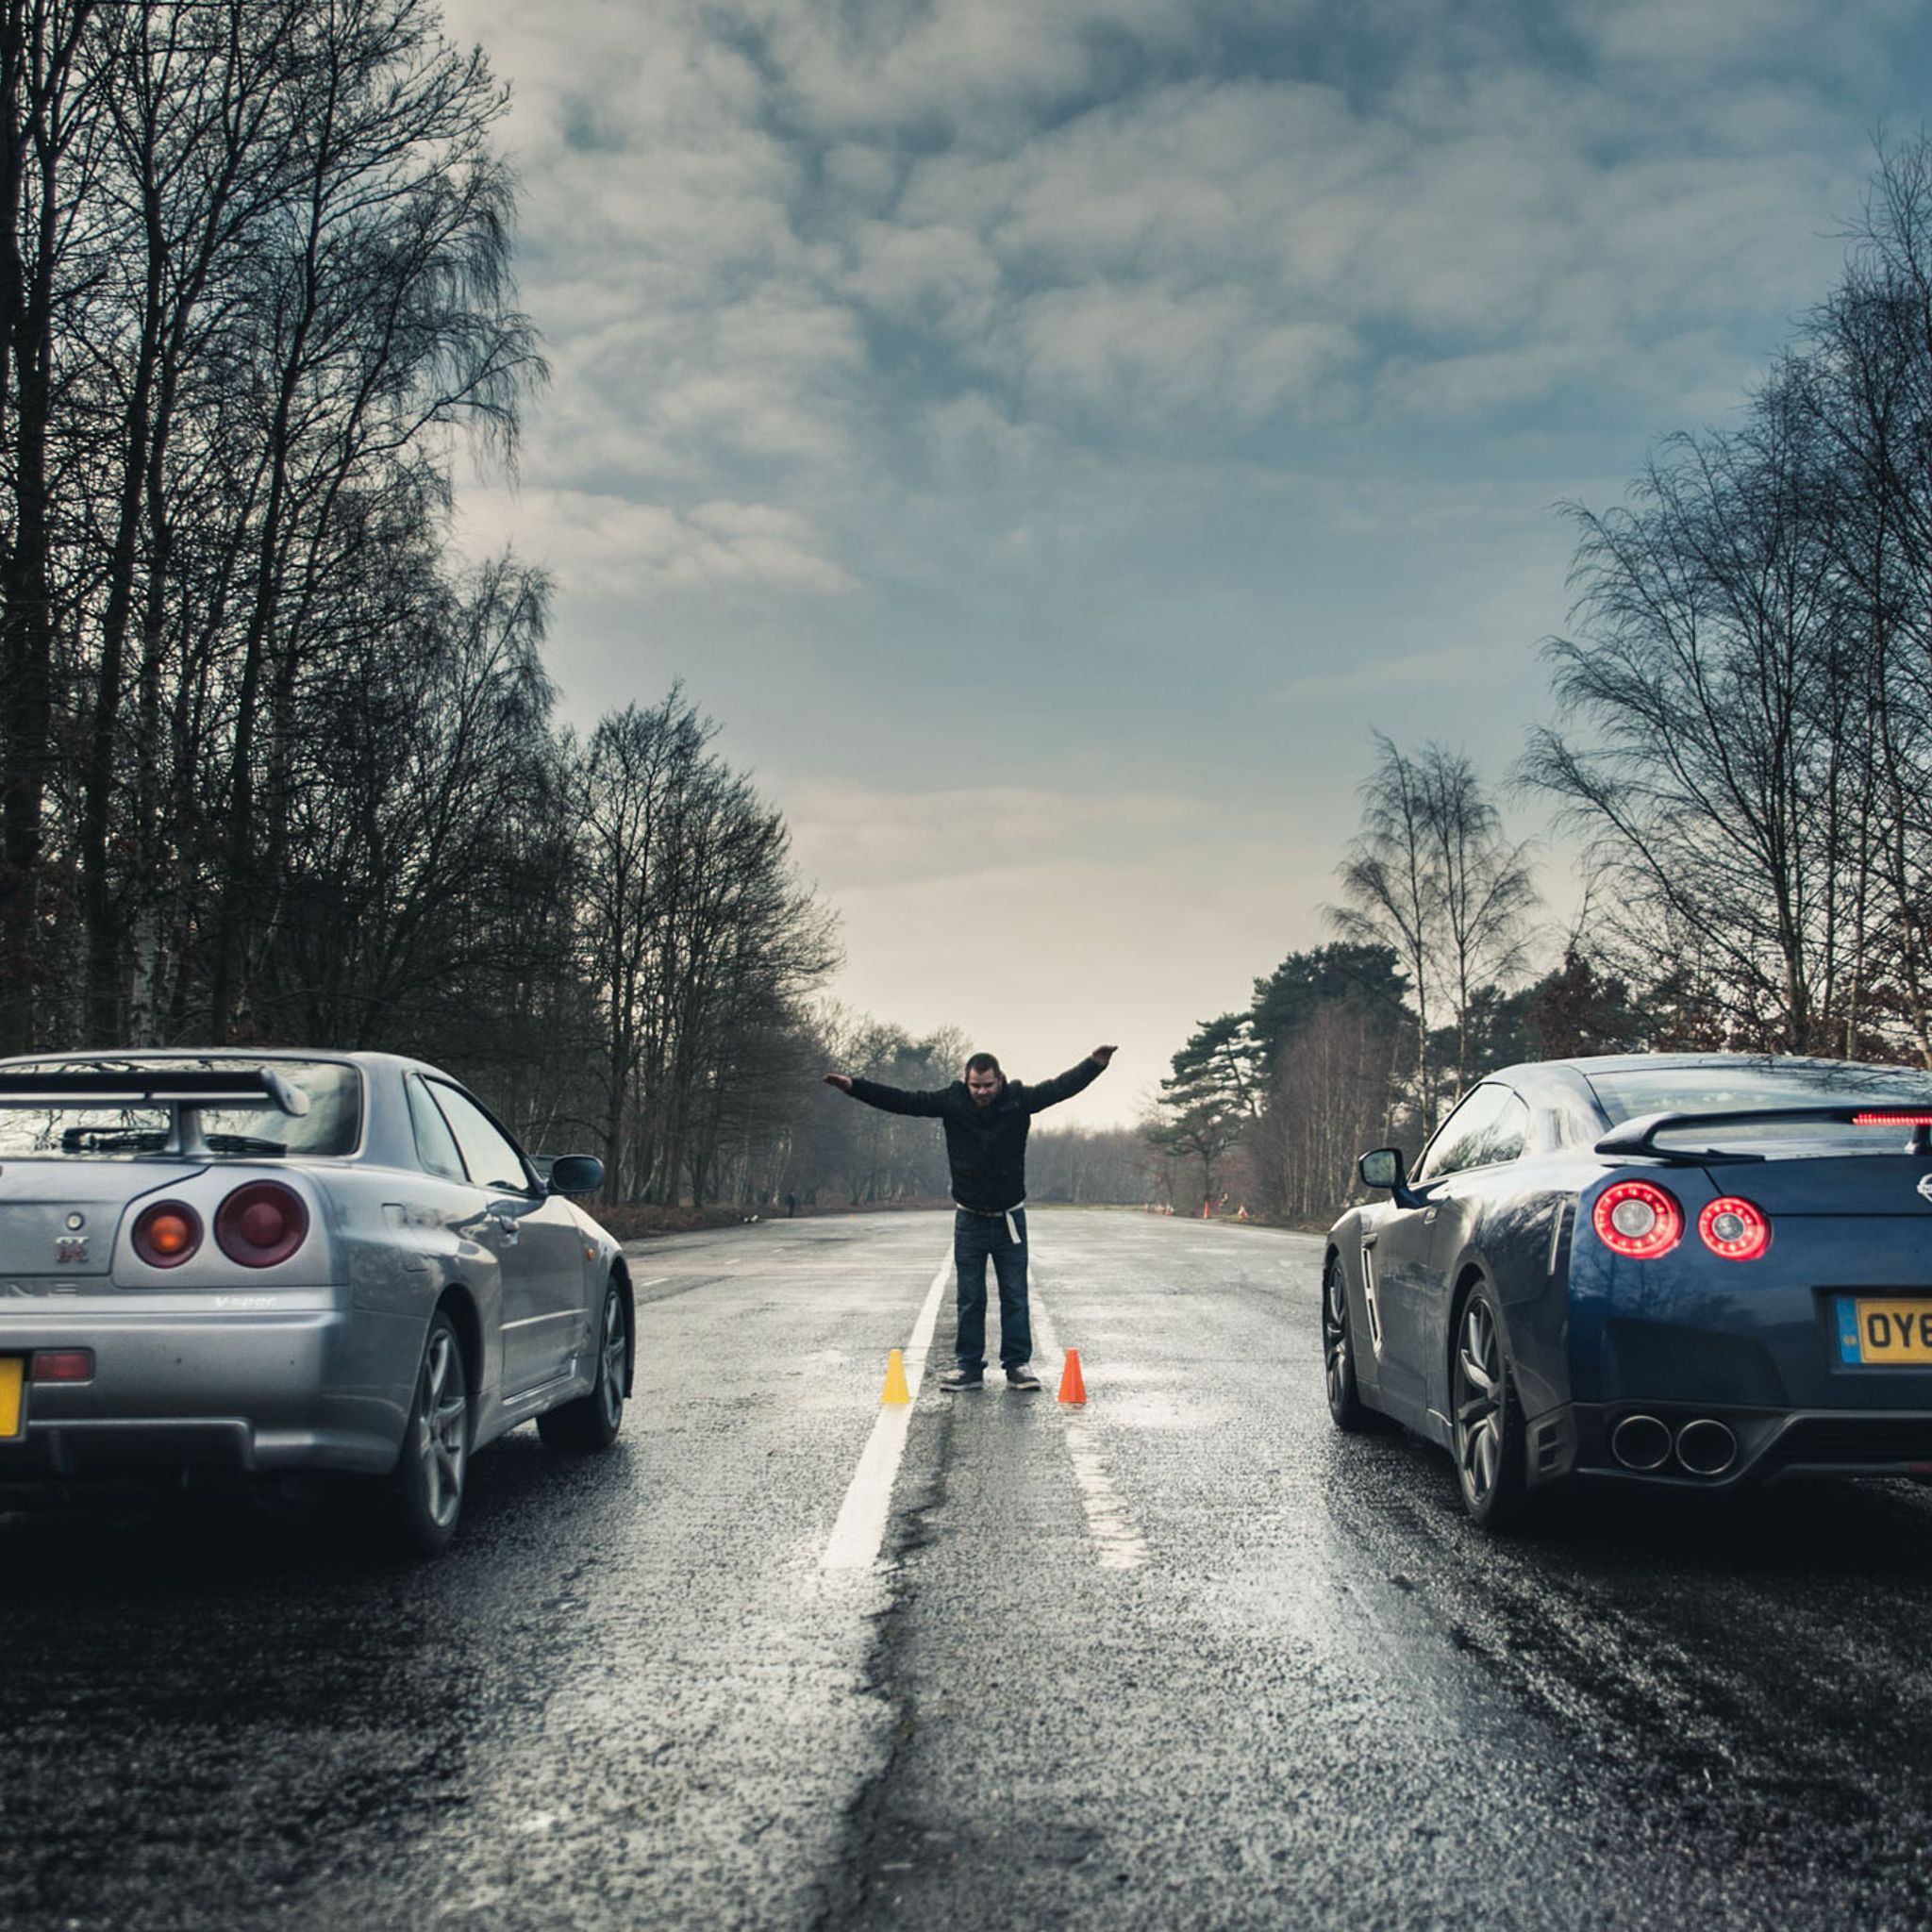 Nissan r34 skyline gt r vs r35 gt r downloadable image gallery part 3 tablet ipad android tablet voltagebd Images